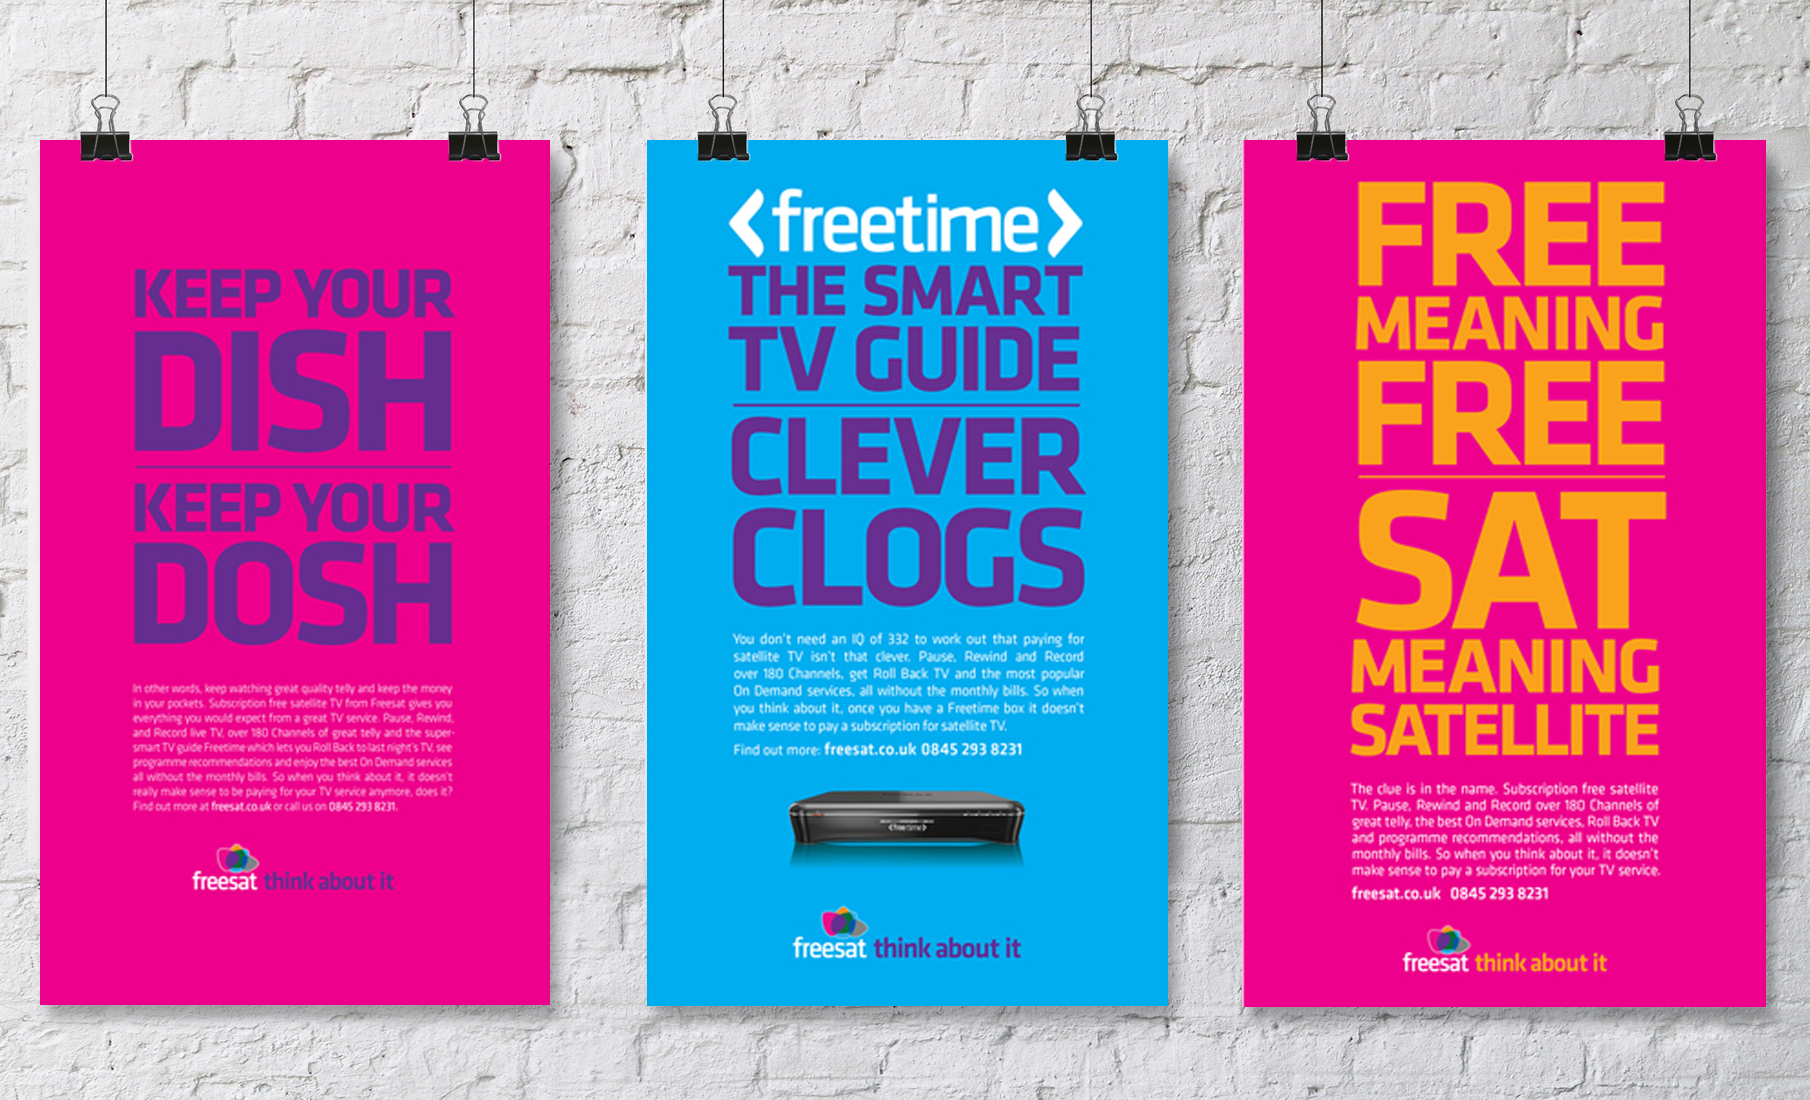 Freesat Press2